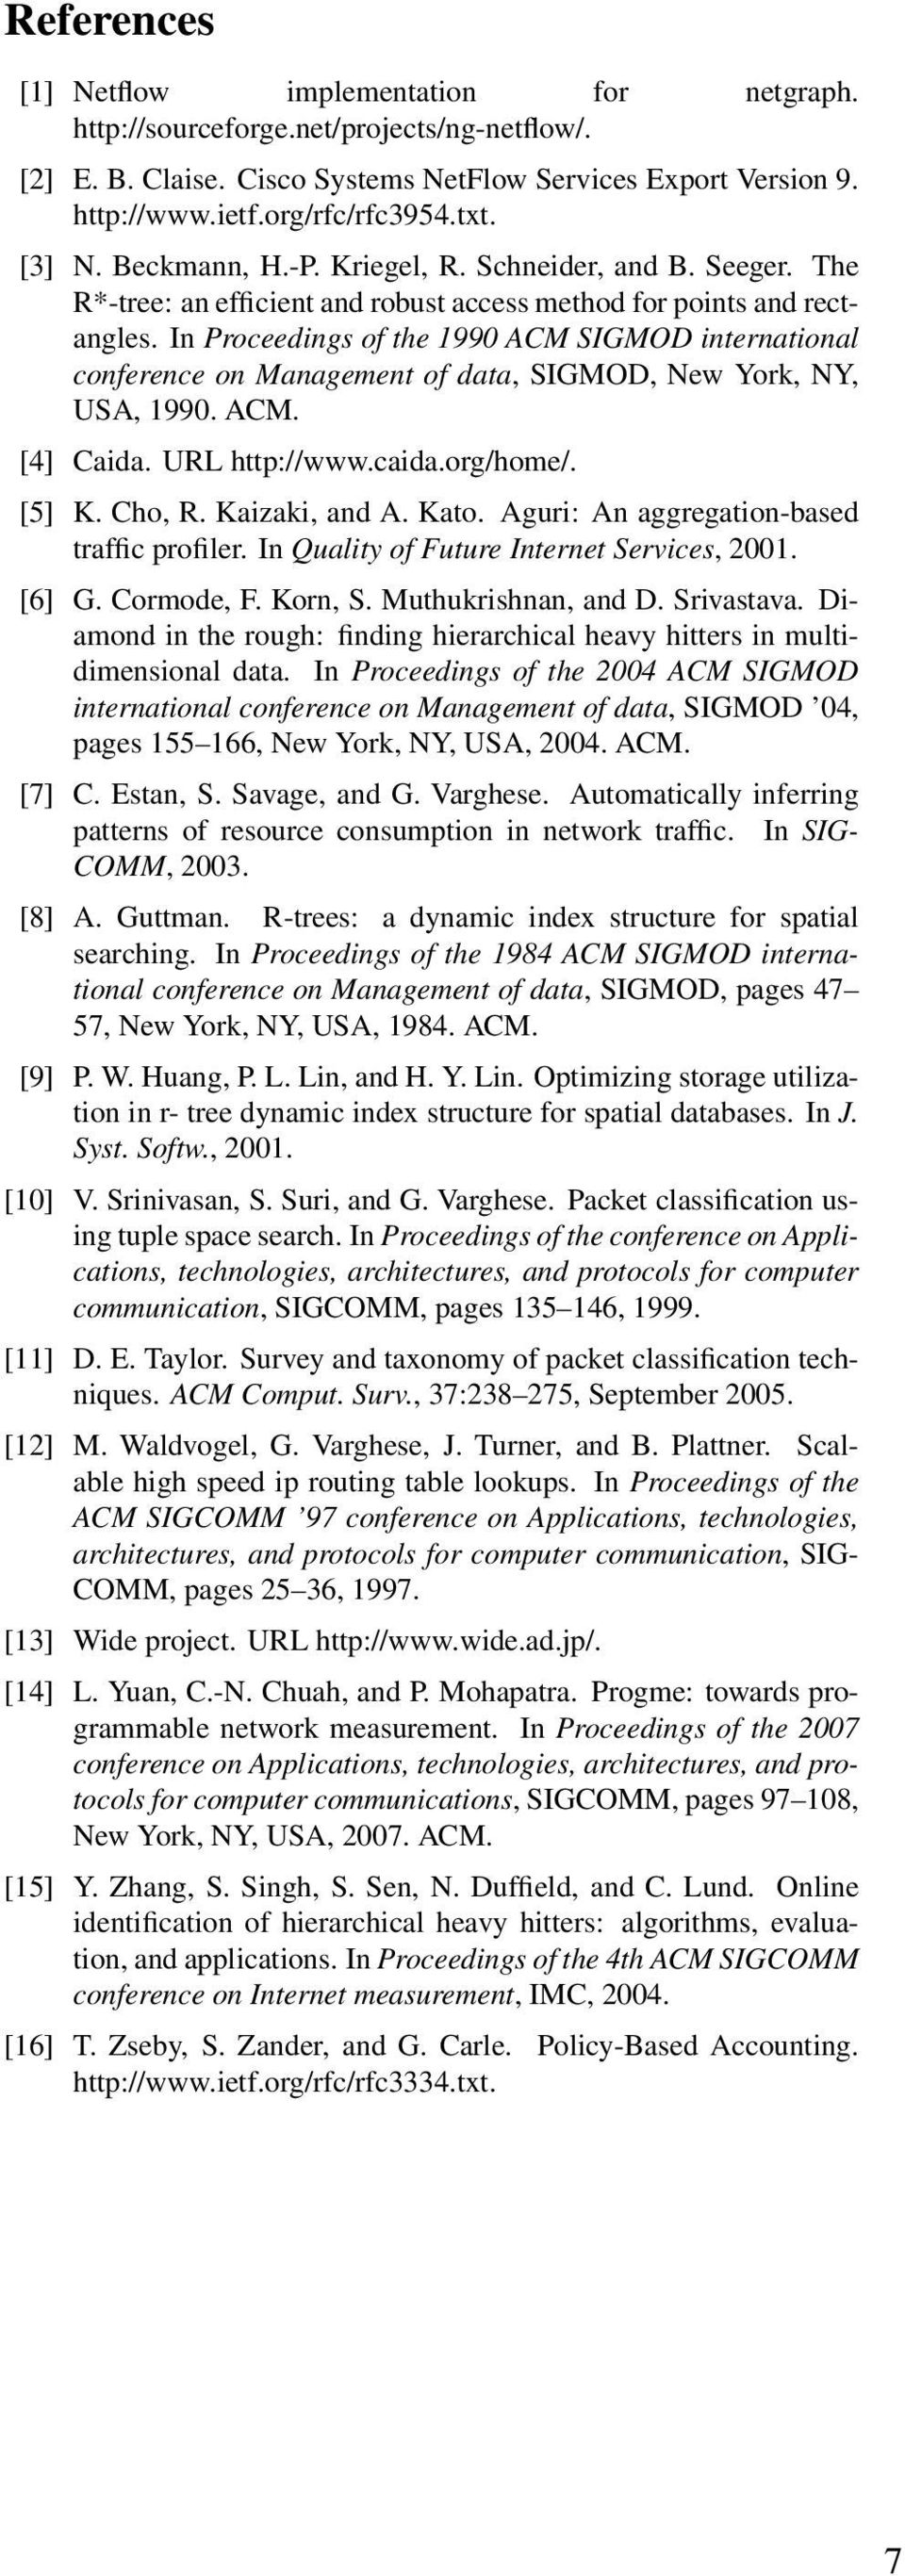 In Proceedings of the 1990 ACM SIGMOD international conference on Management of data, SIGMOD, New York, NY, USA, 1990. ACM. [4] Caida. URL http://www.caida.org/home/. [5] K. Cho, R. Kaizaki, and A.